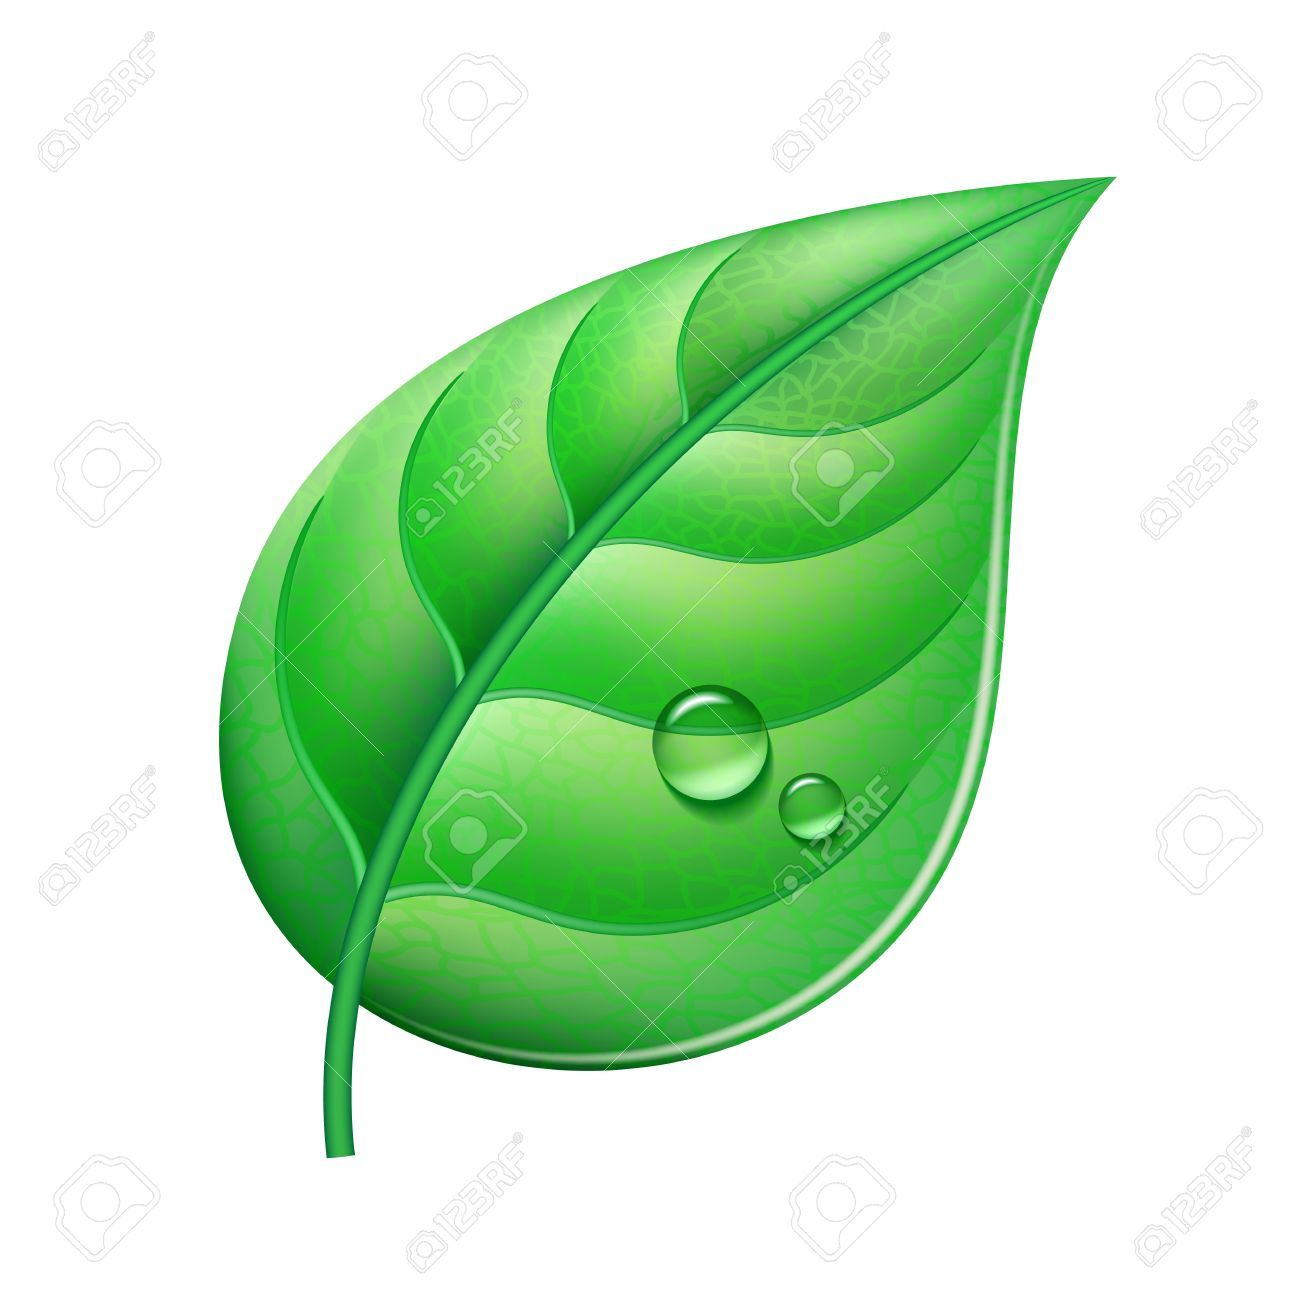 Verte clipart picture freeuse stock Clipart feuille verte » Clipart Portal picture freeuse stock